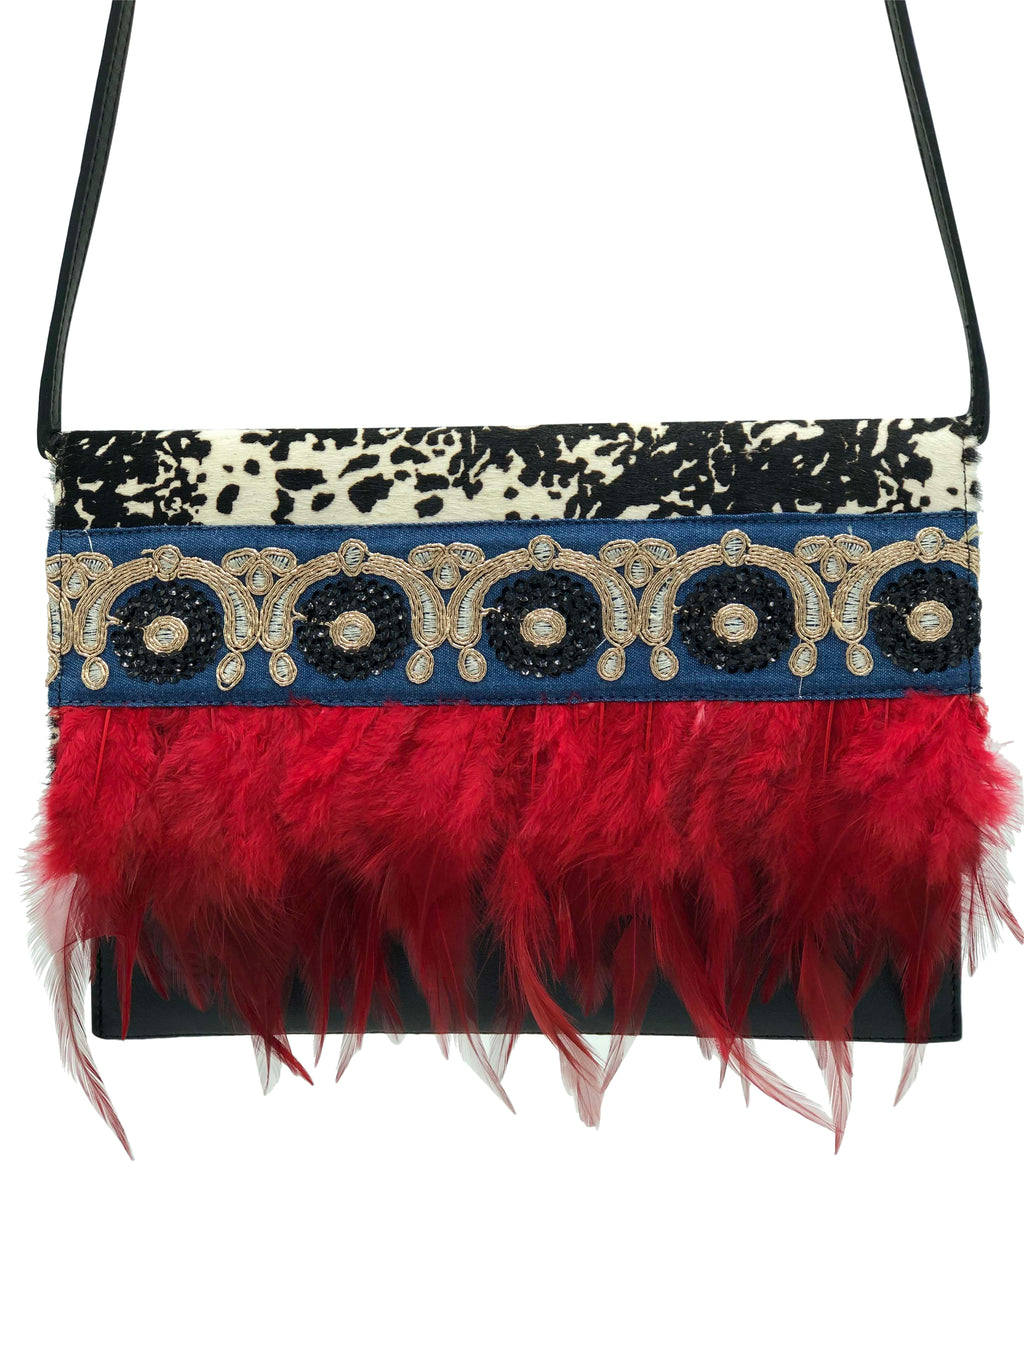 "Black and White haircalf & black leather clutch with red feathers.  ""Renaissance""."